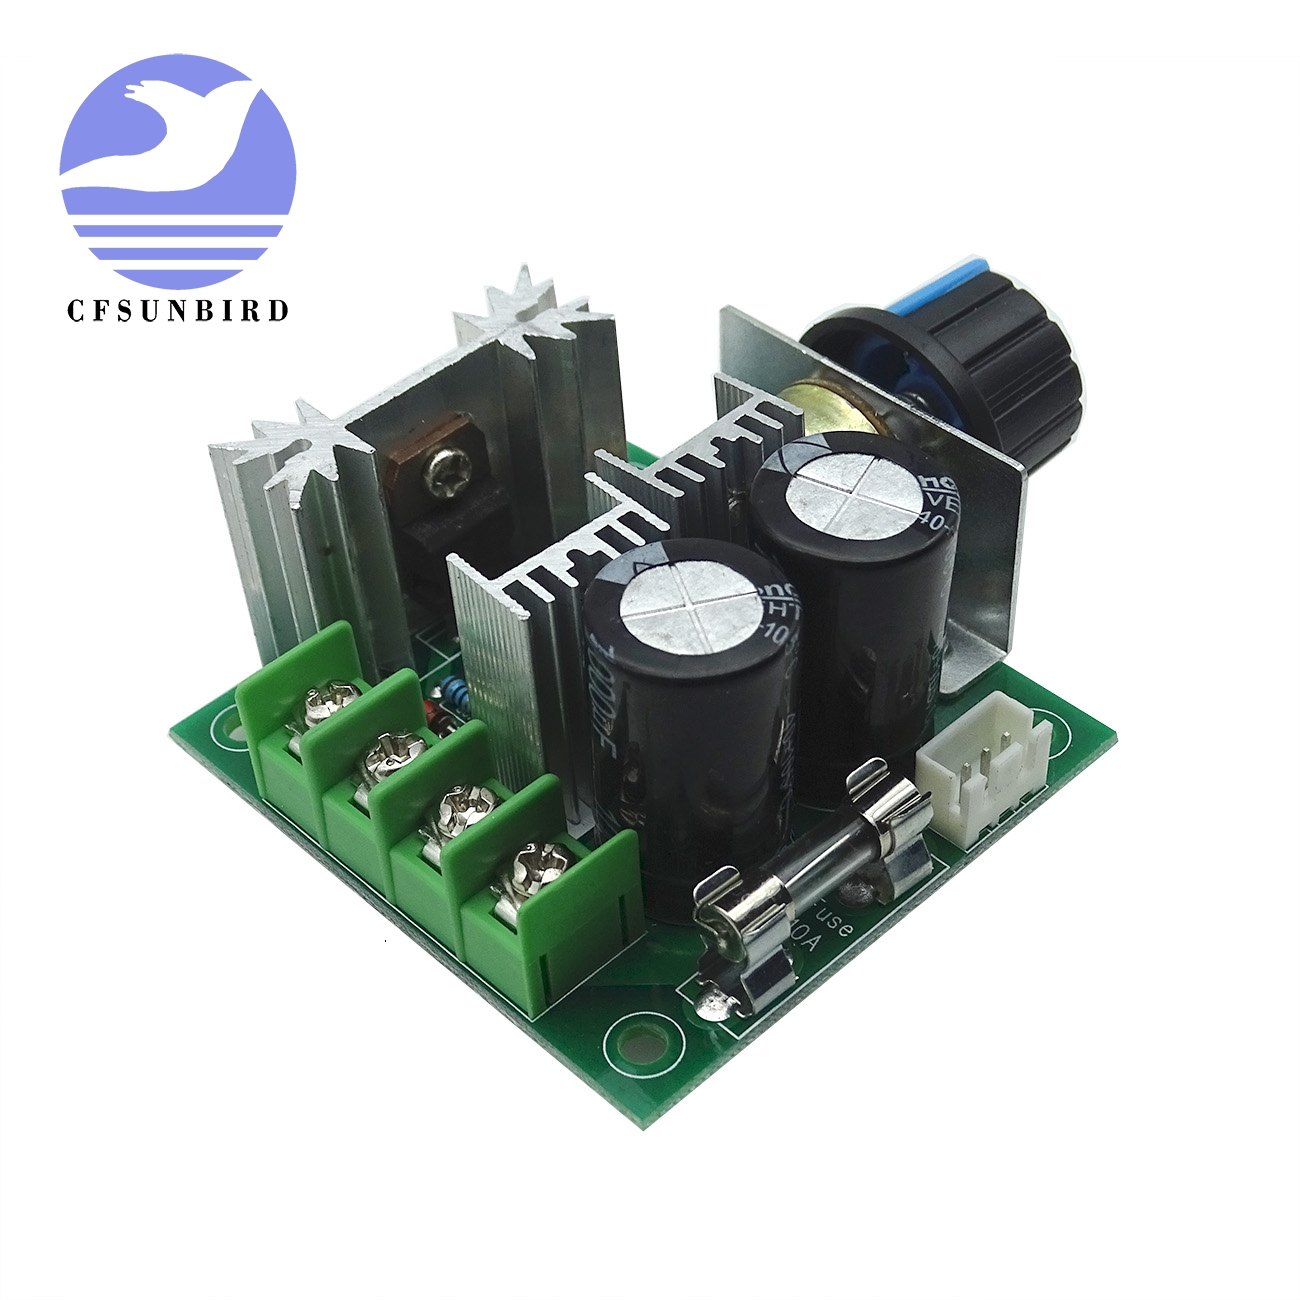 1pcs Cfsunbird Width Modulation 12v-40v 10a Pulse Pwm Dc Motor Speed Control Switch New More Discounts Surprises Electronic Components & Supplies